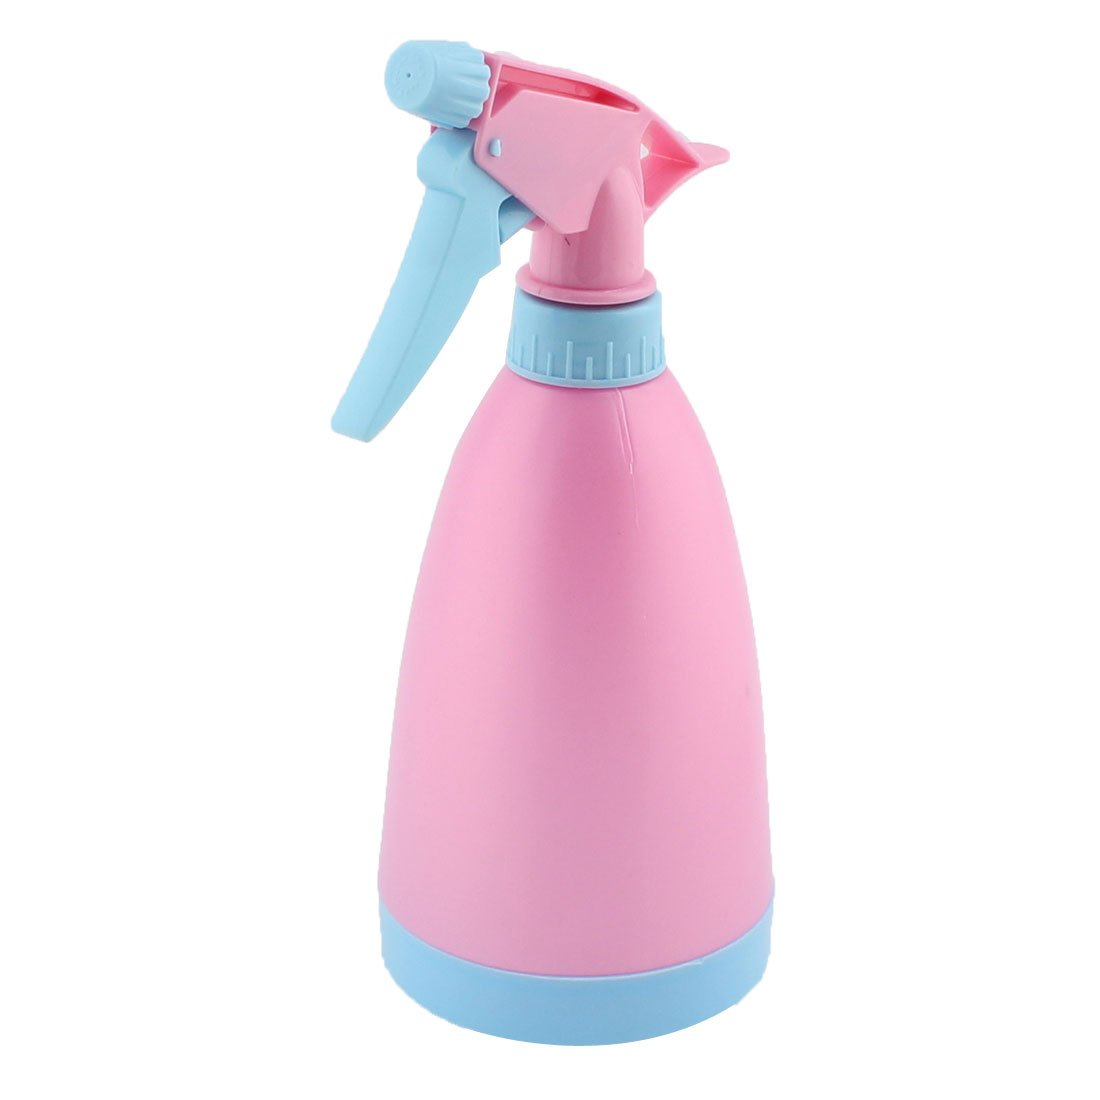 uxcell Plastic Hair Salon Gardening Potted Plant Trigger Spray Bottle 475ml Pink Blue US-SA-AJD-217275